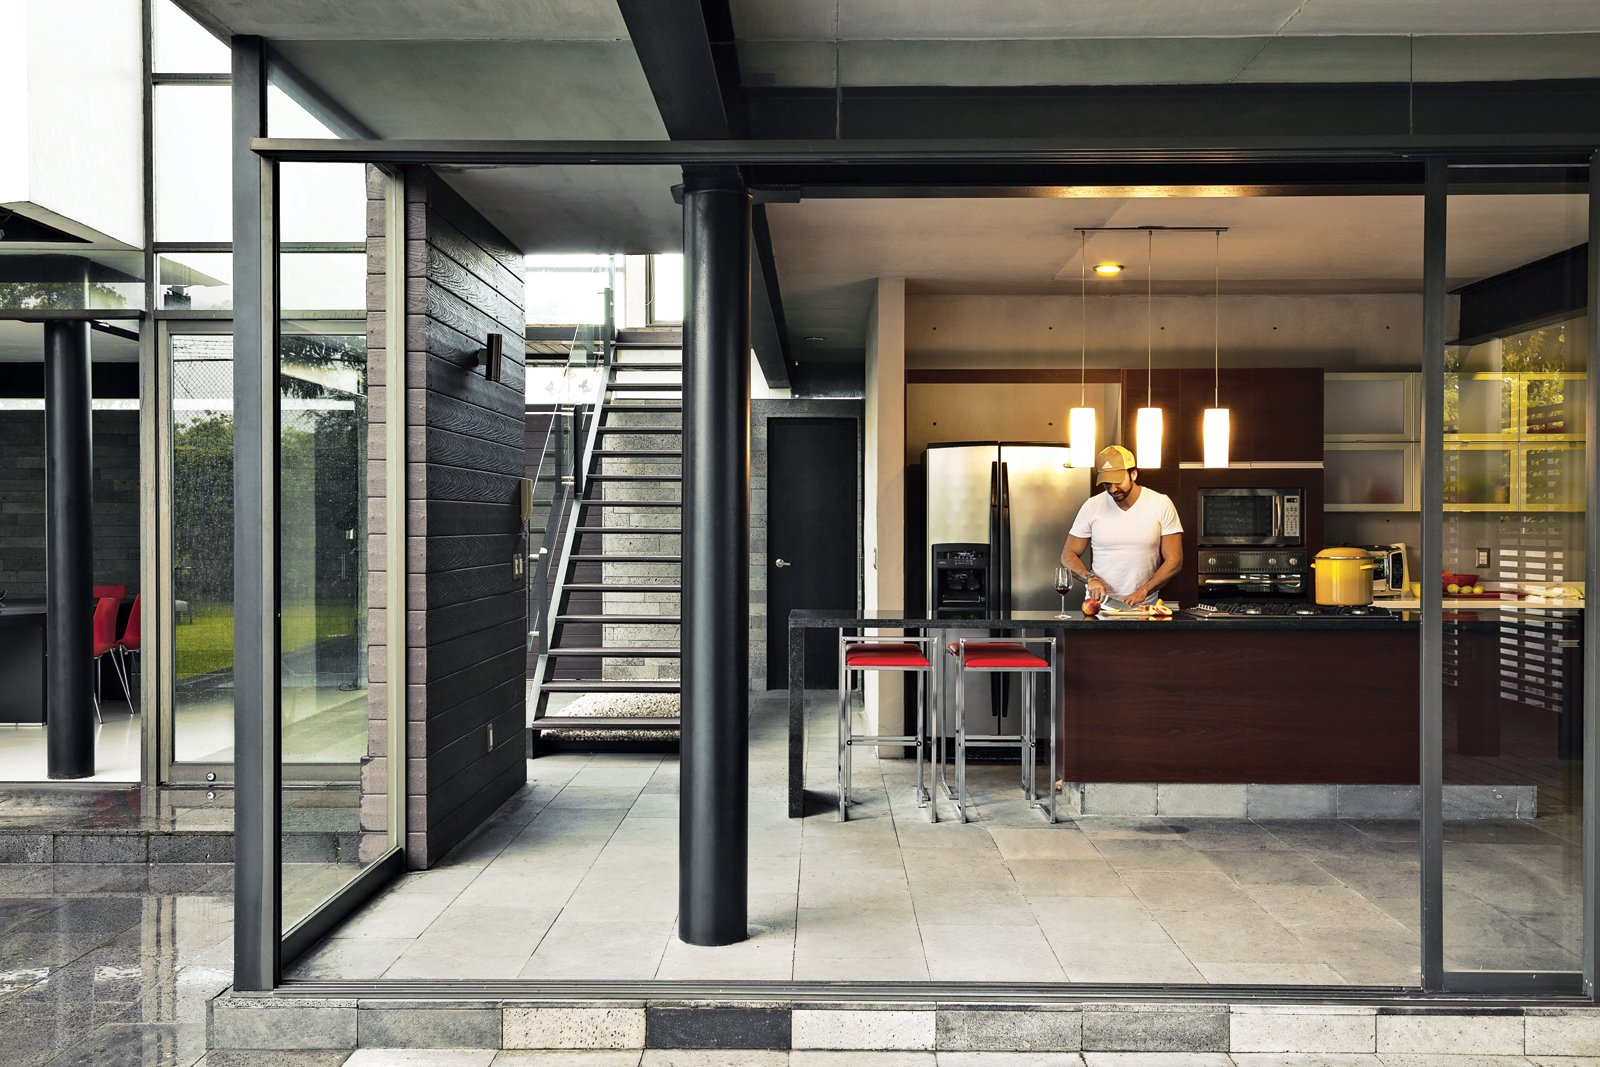 Alfredo chops away in the kitchen, which features floor-to-ceiling sliding glass walls. Tagged: Kitchen, Granite Counter, Refrigerator, Pendant Lighting, and Wall Oven.  Indoor-Outdoor Retreats in Mexico by Allie Weiss from An Affordable High-Design Vacation Home in Mexico